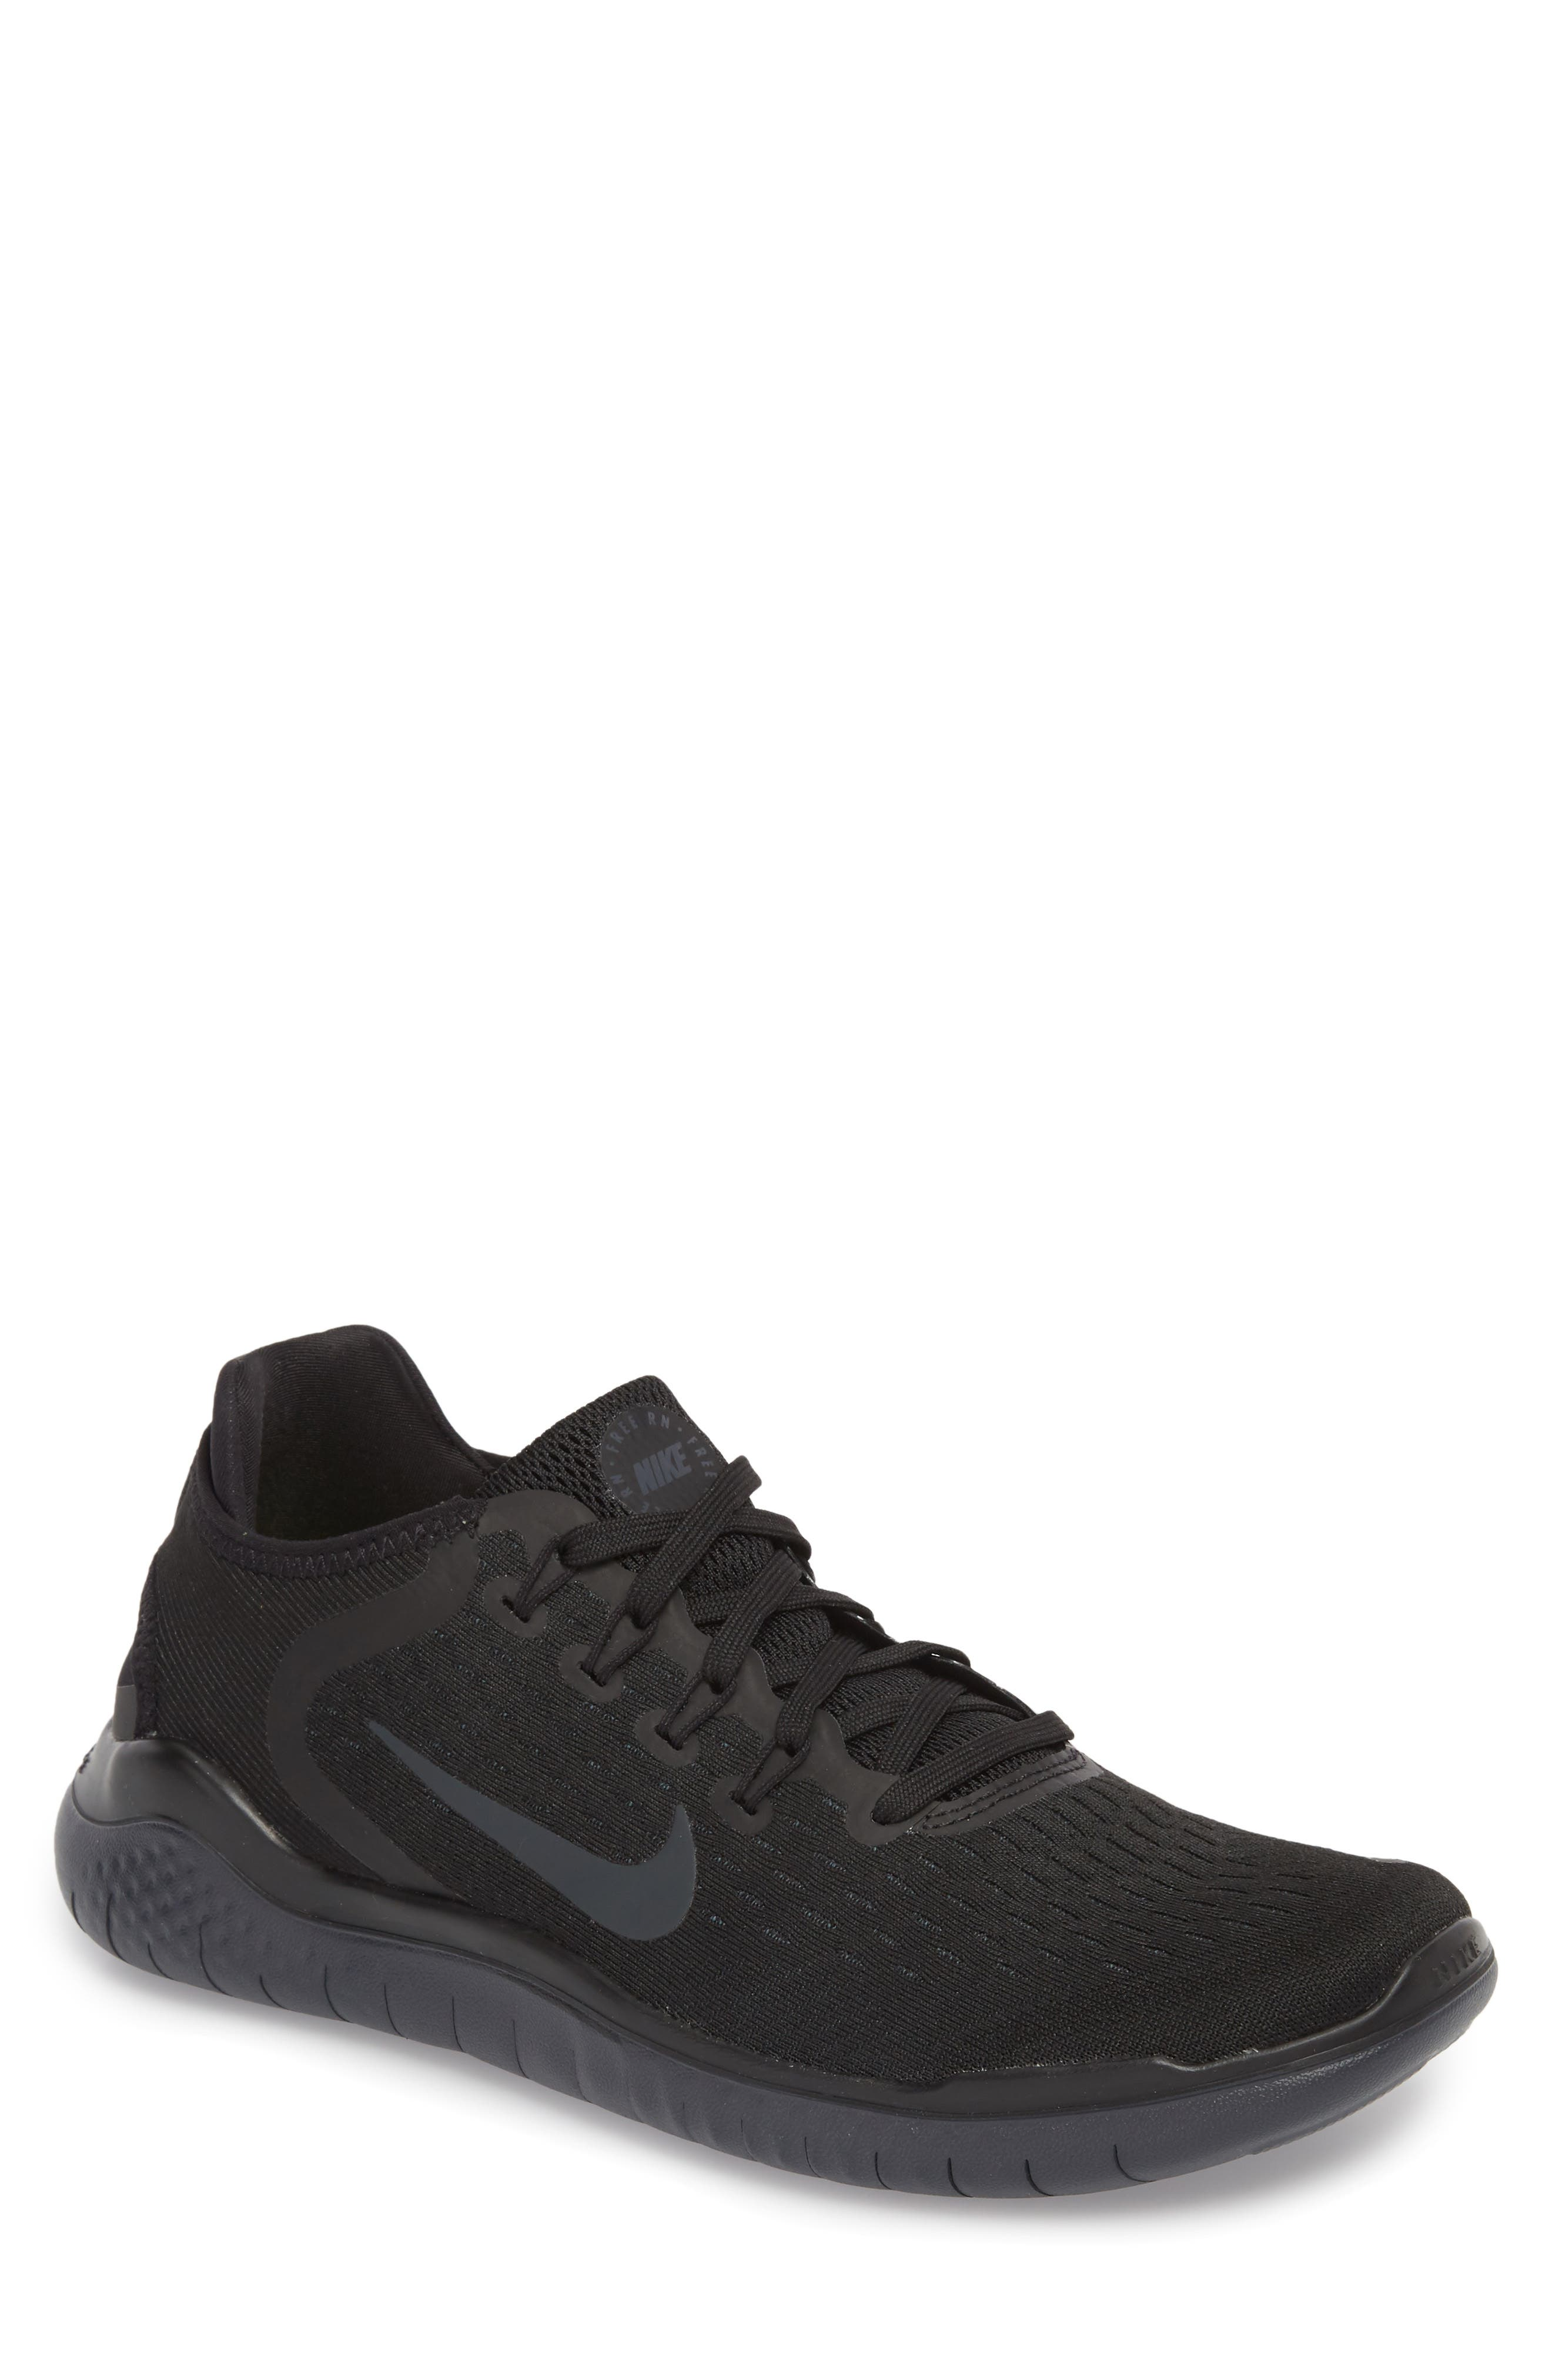 Free RN 2018 Running Shoe,                             Main thumbnail 1, color,                             Black/ Anthracite